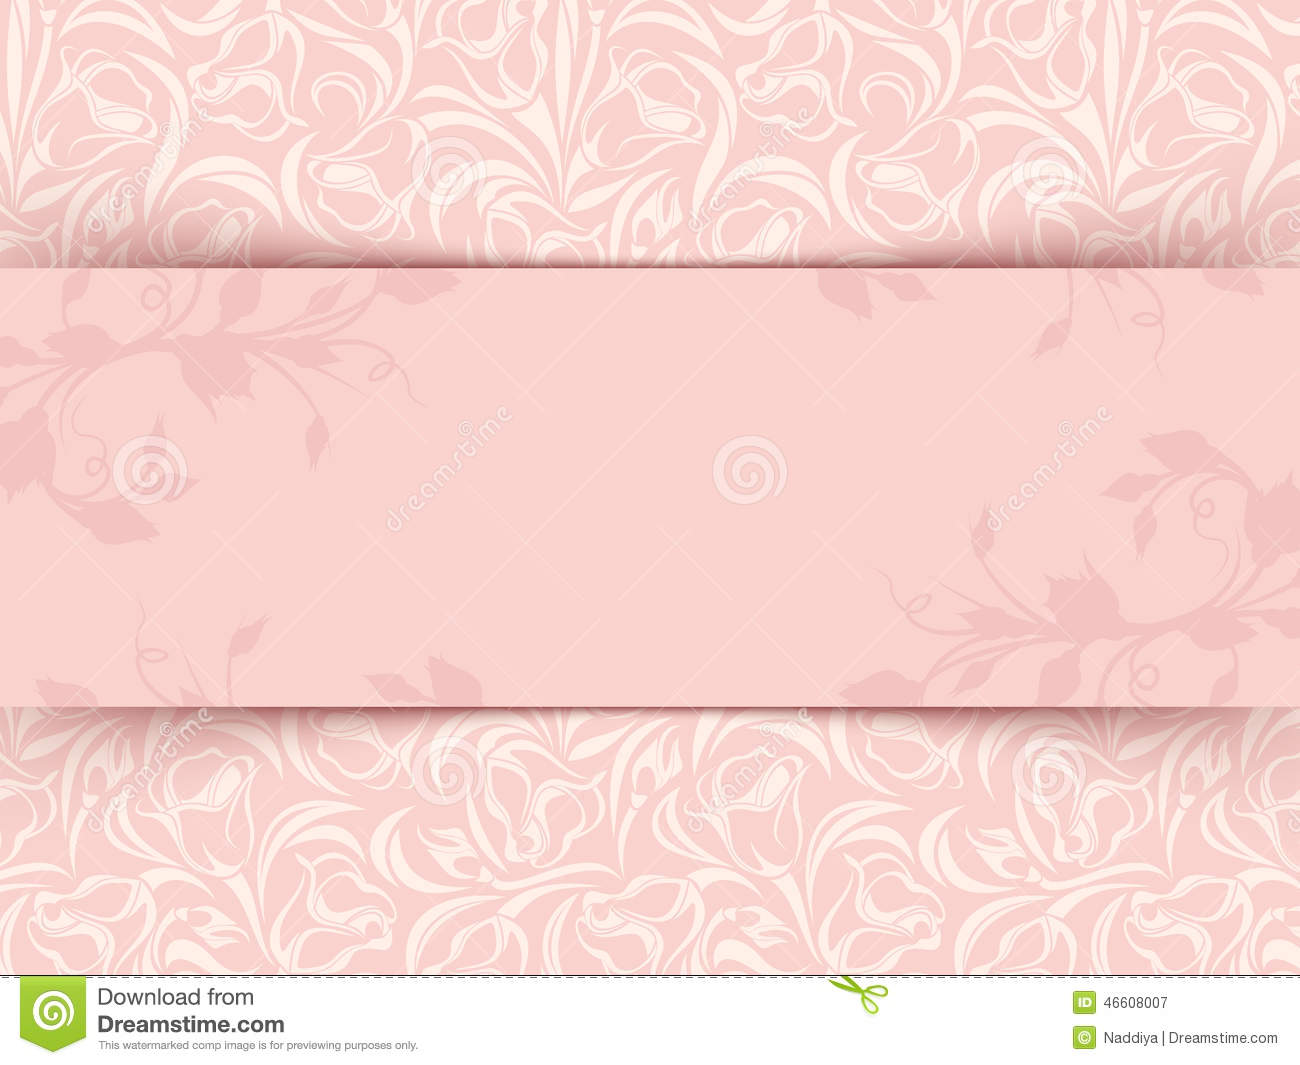 Vintage pink invitation card with floral pattern vector eps 10 download comp stopboris Choice Image